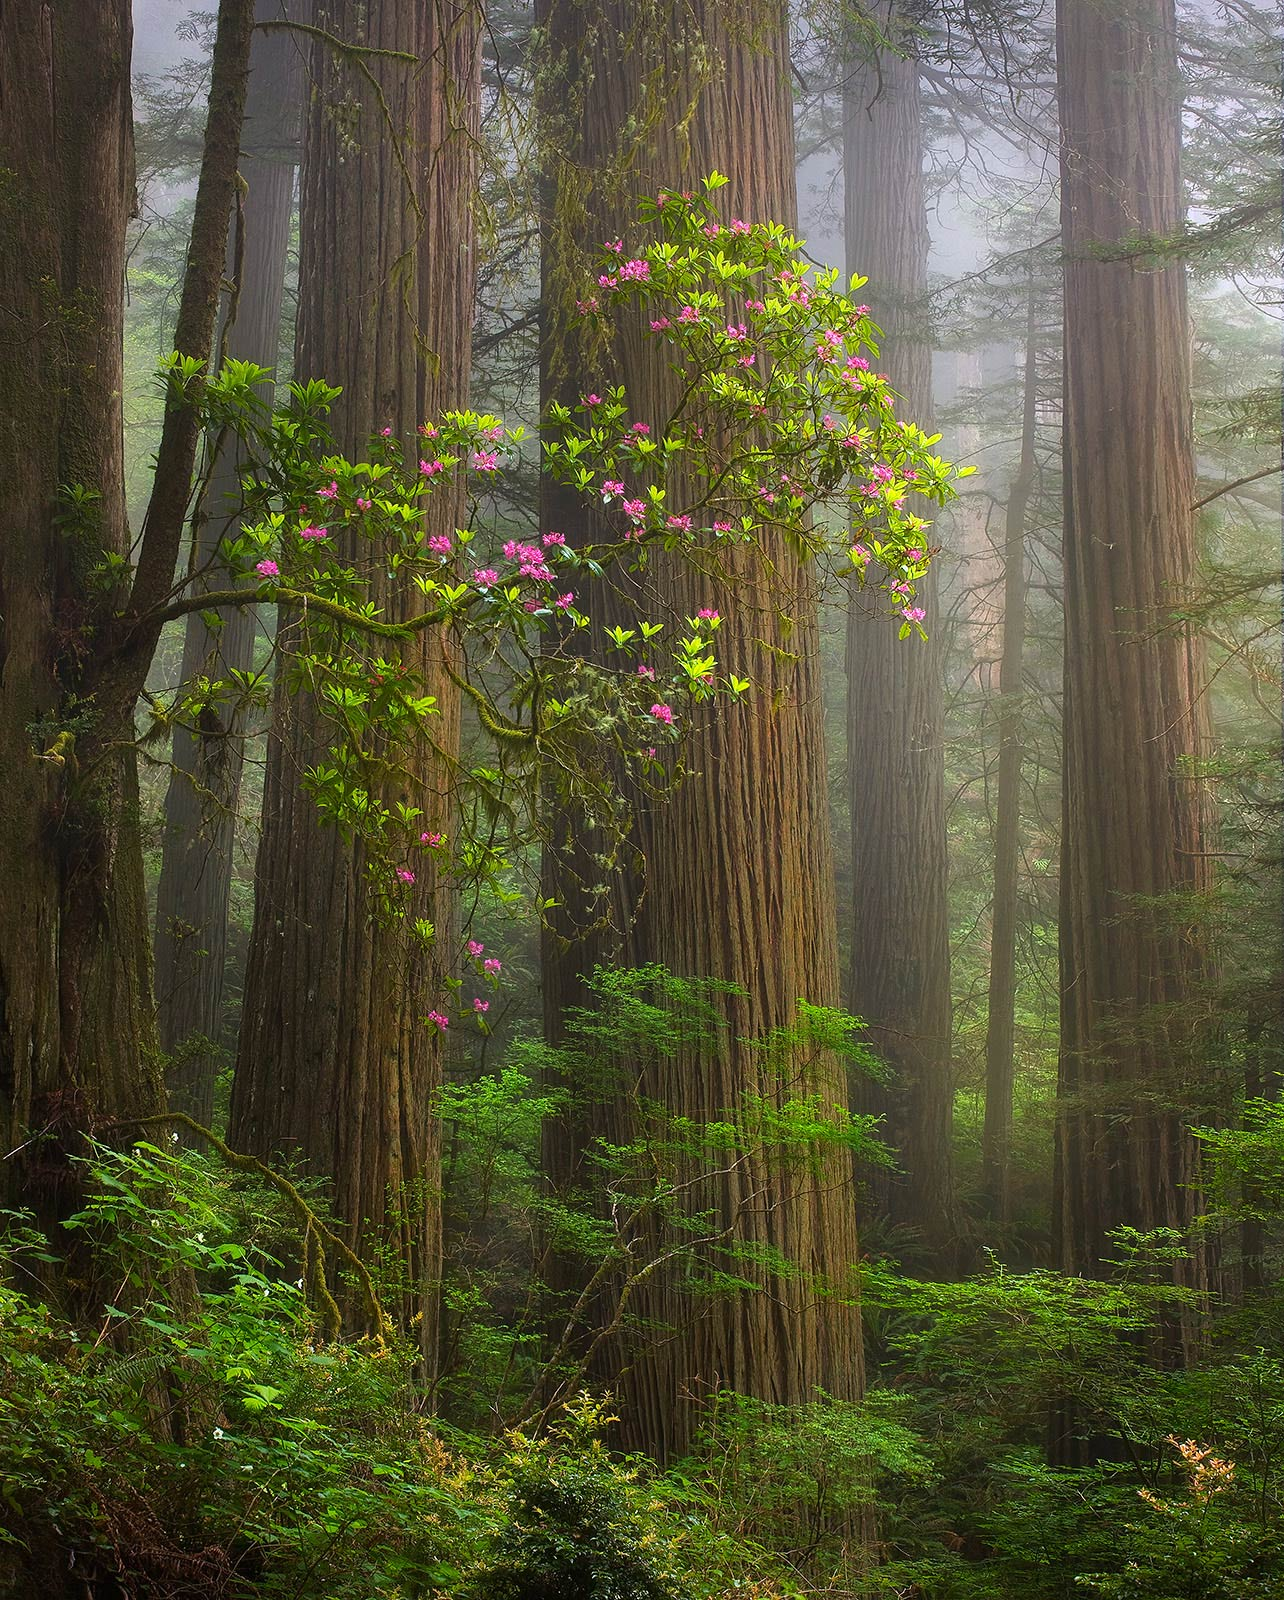 A beautiful Rhodedendron the centerpiece of this redwood scene in morning fog. I was drawn to the array of colors, lines and...